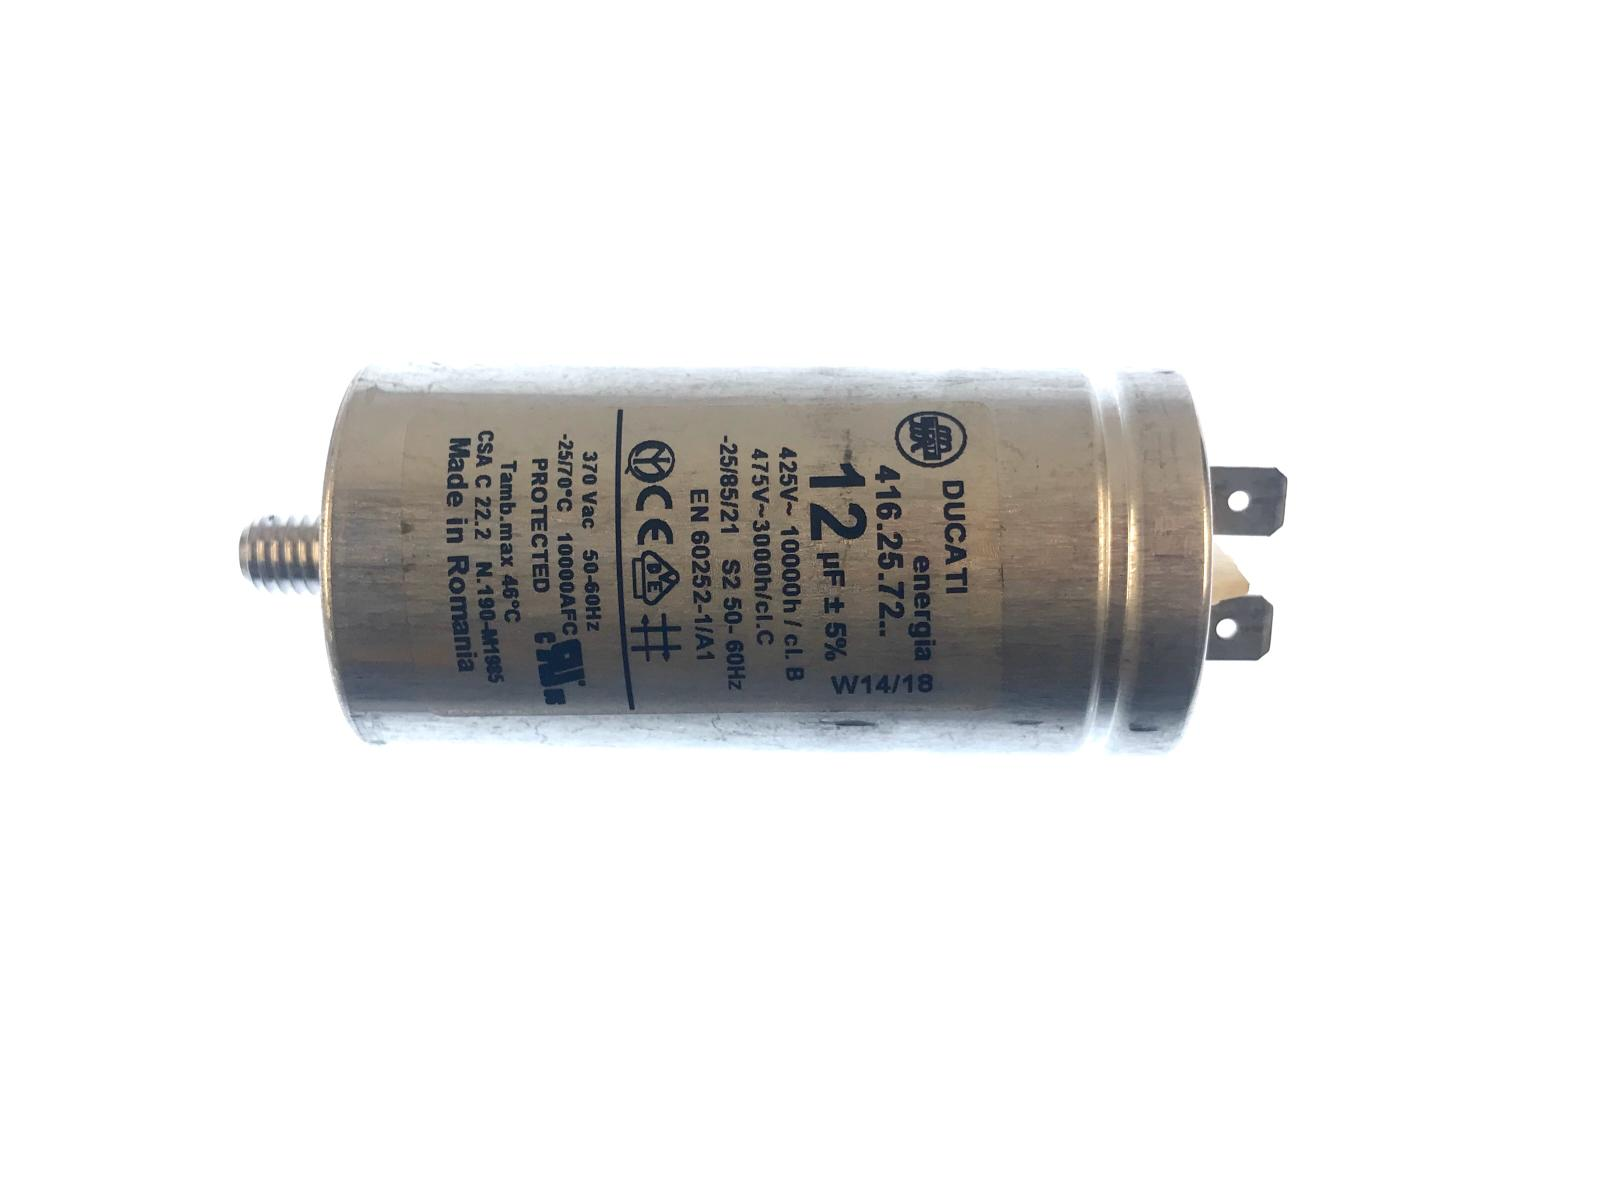 Polypropylene Capacitor Ducati 12uF For Hoover DX H9A2TCEX-S 416.25.72